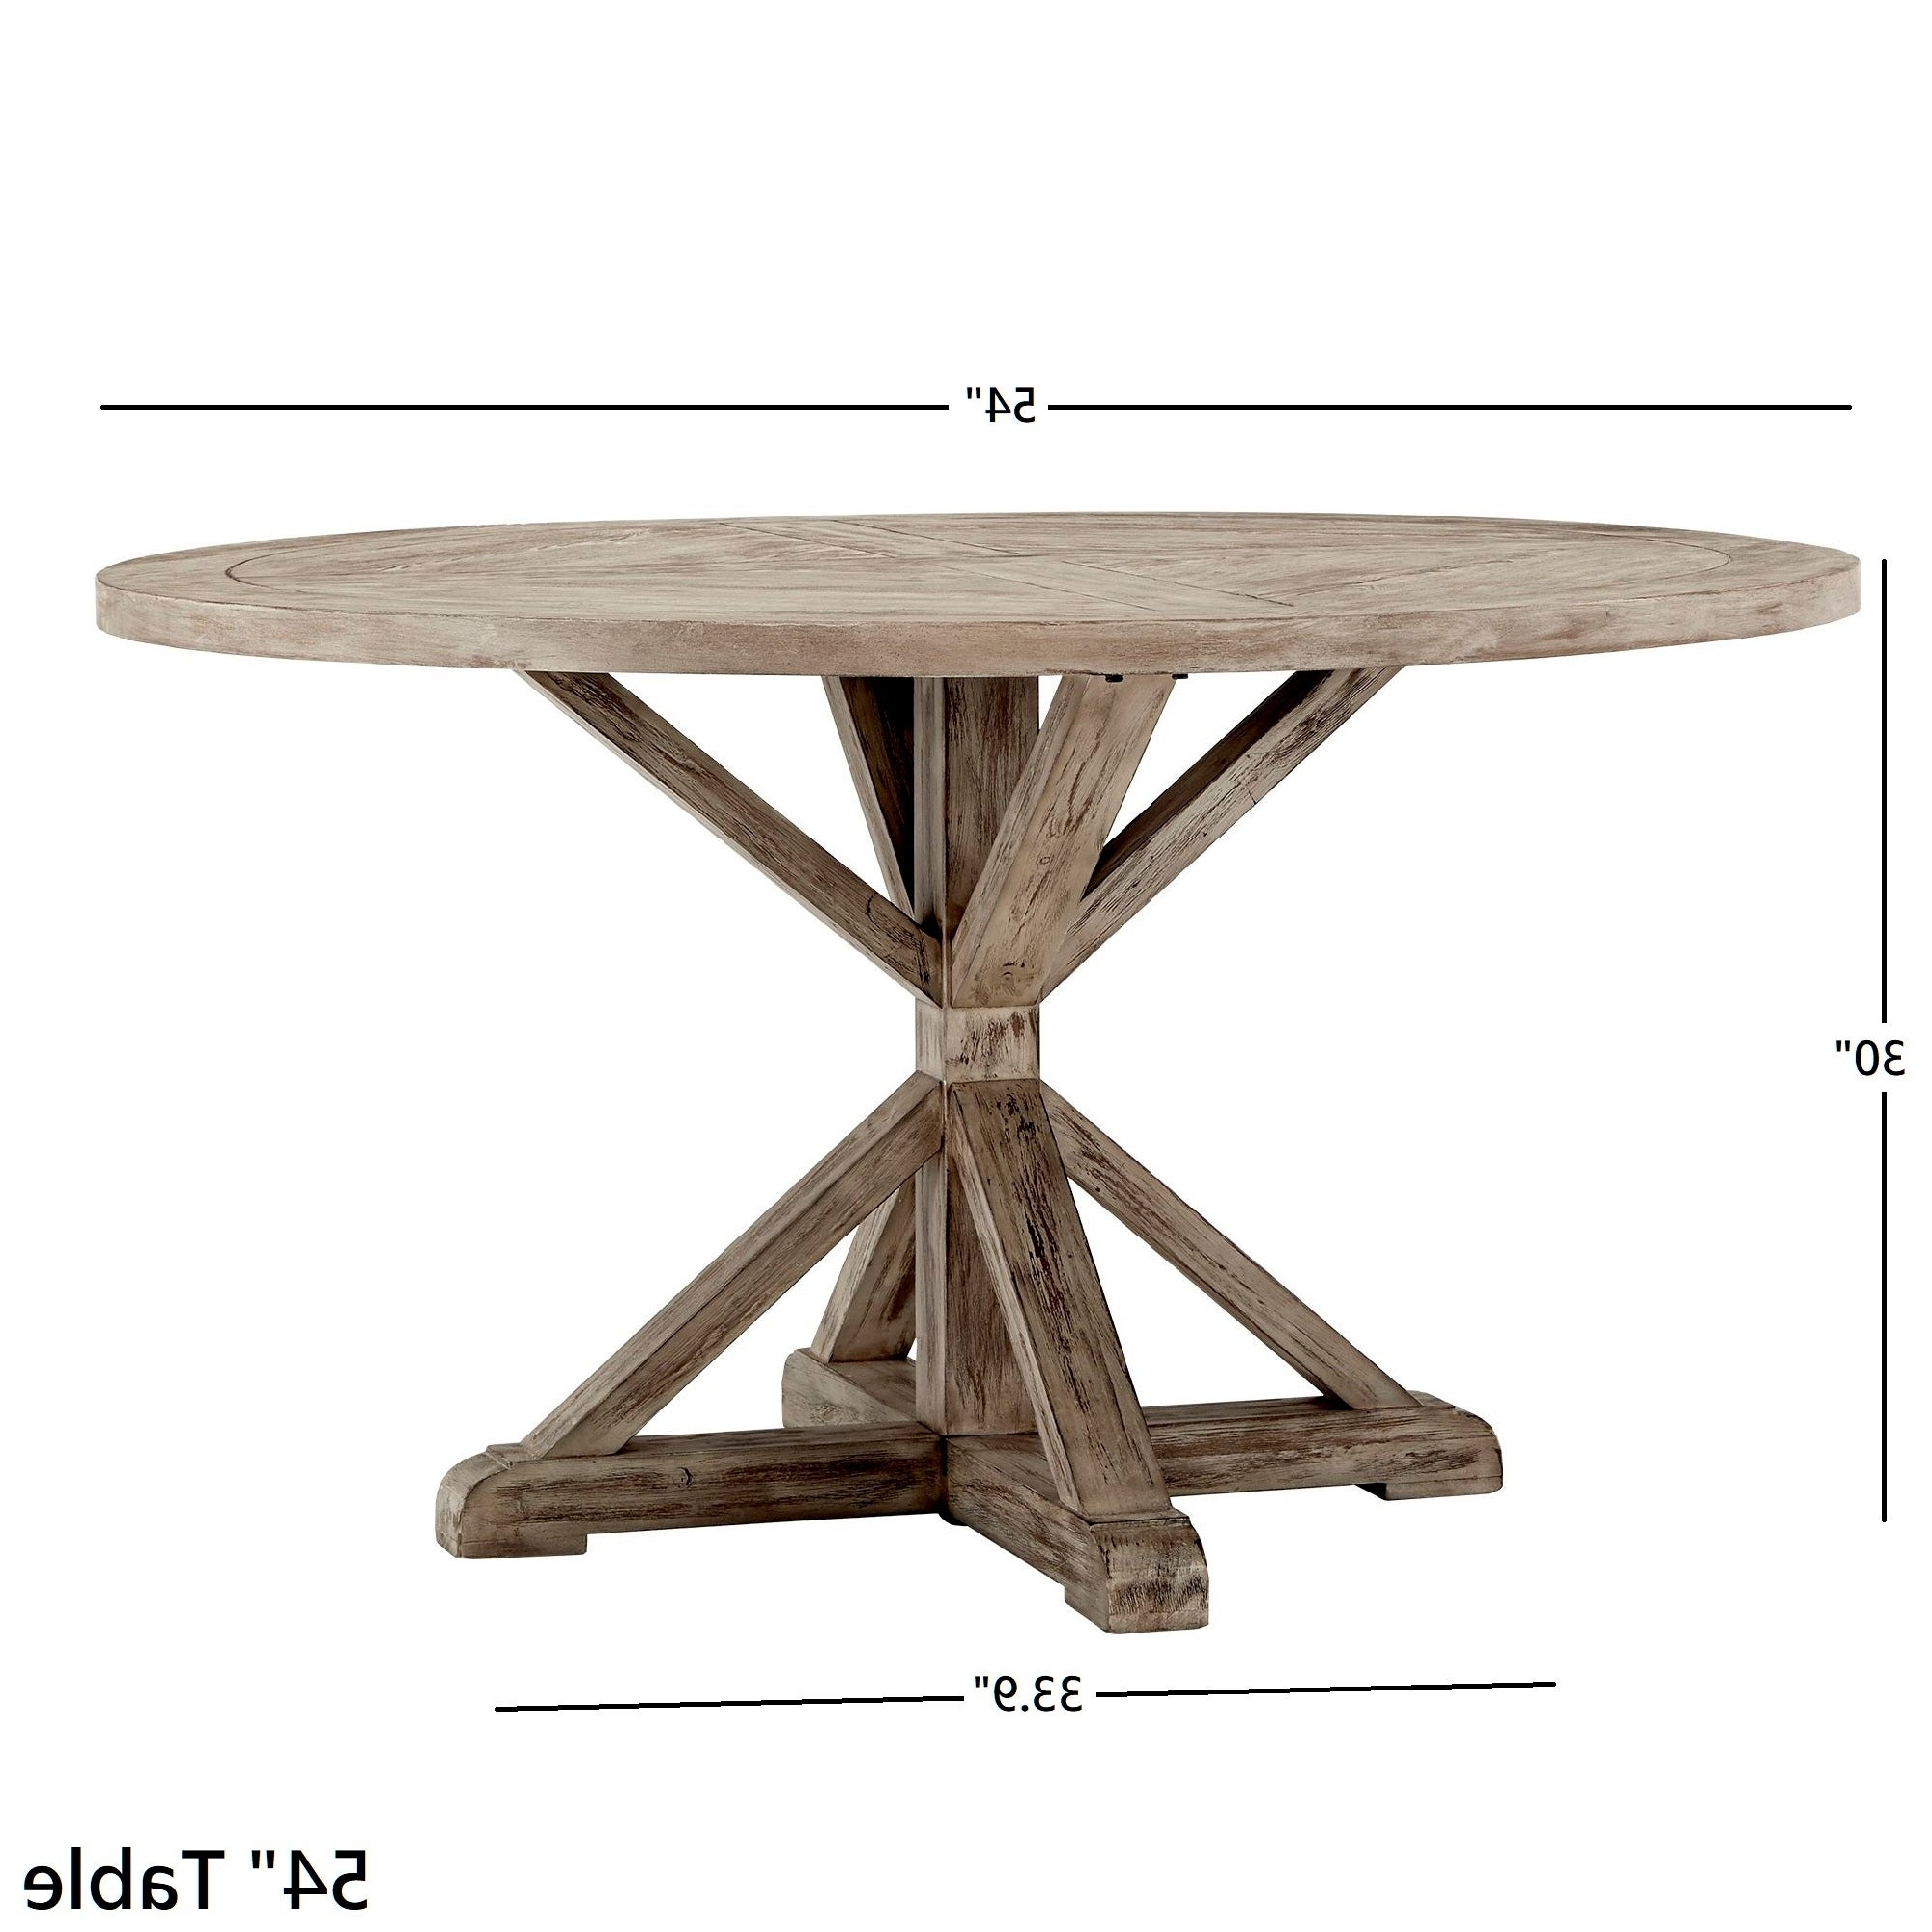 Benchwright Antique Grey Oak Round Dining Tableinspire Q Artisan Within Latest Benchwright Round Pedestal Dining Tables (View 16 of 25)